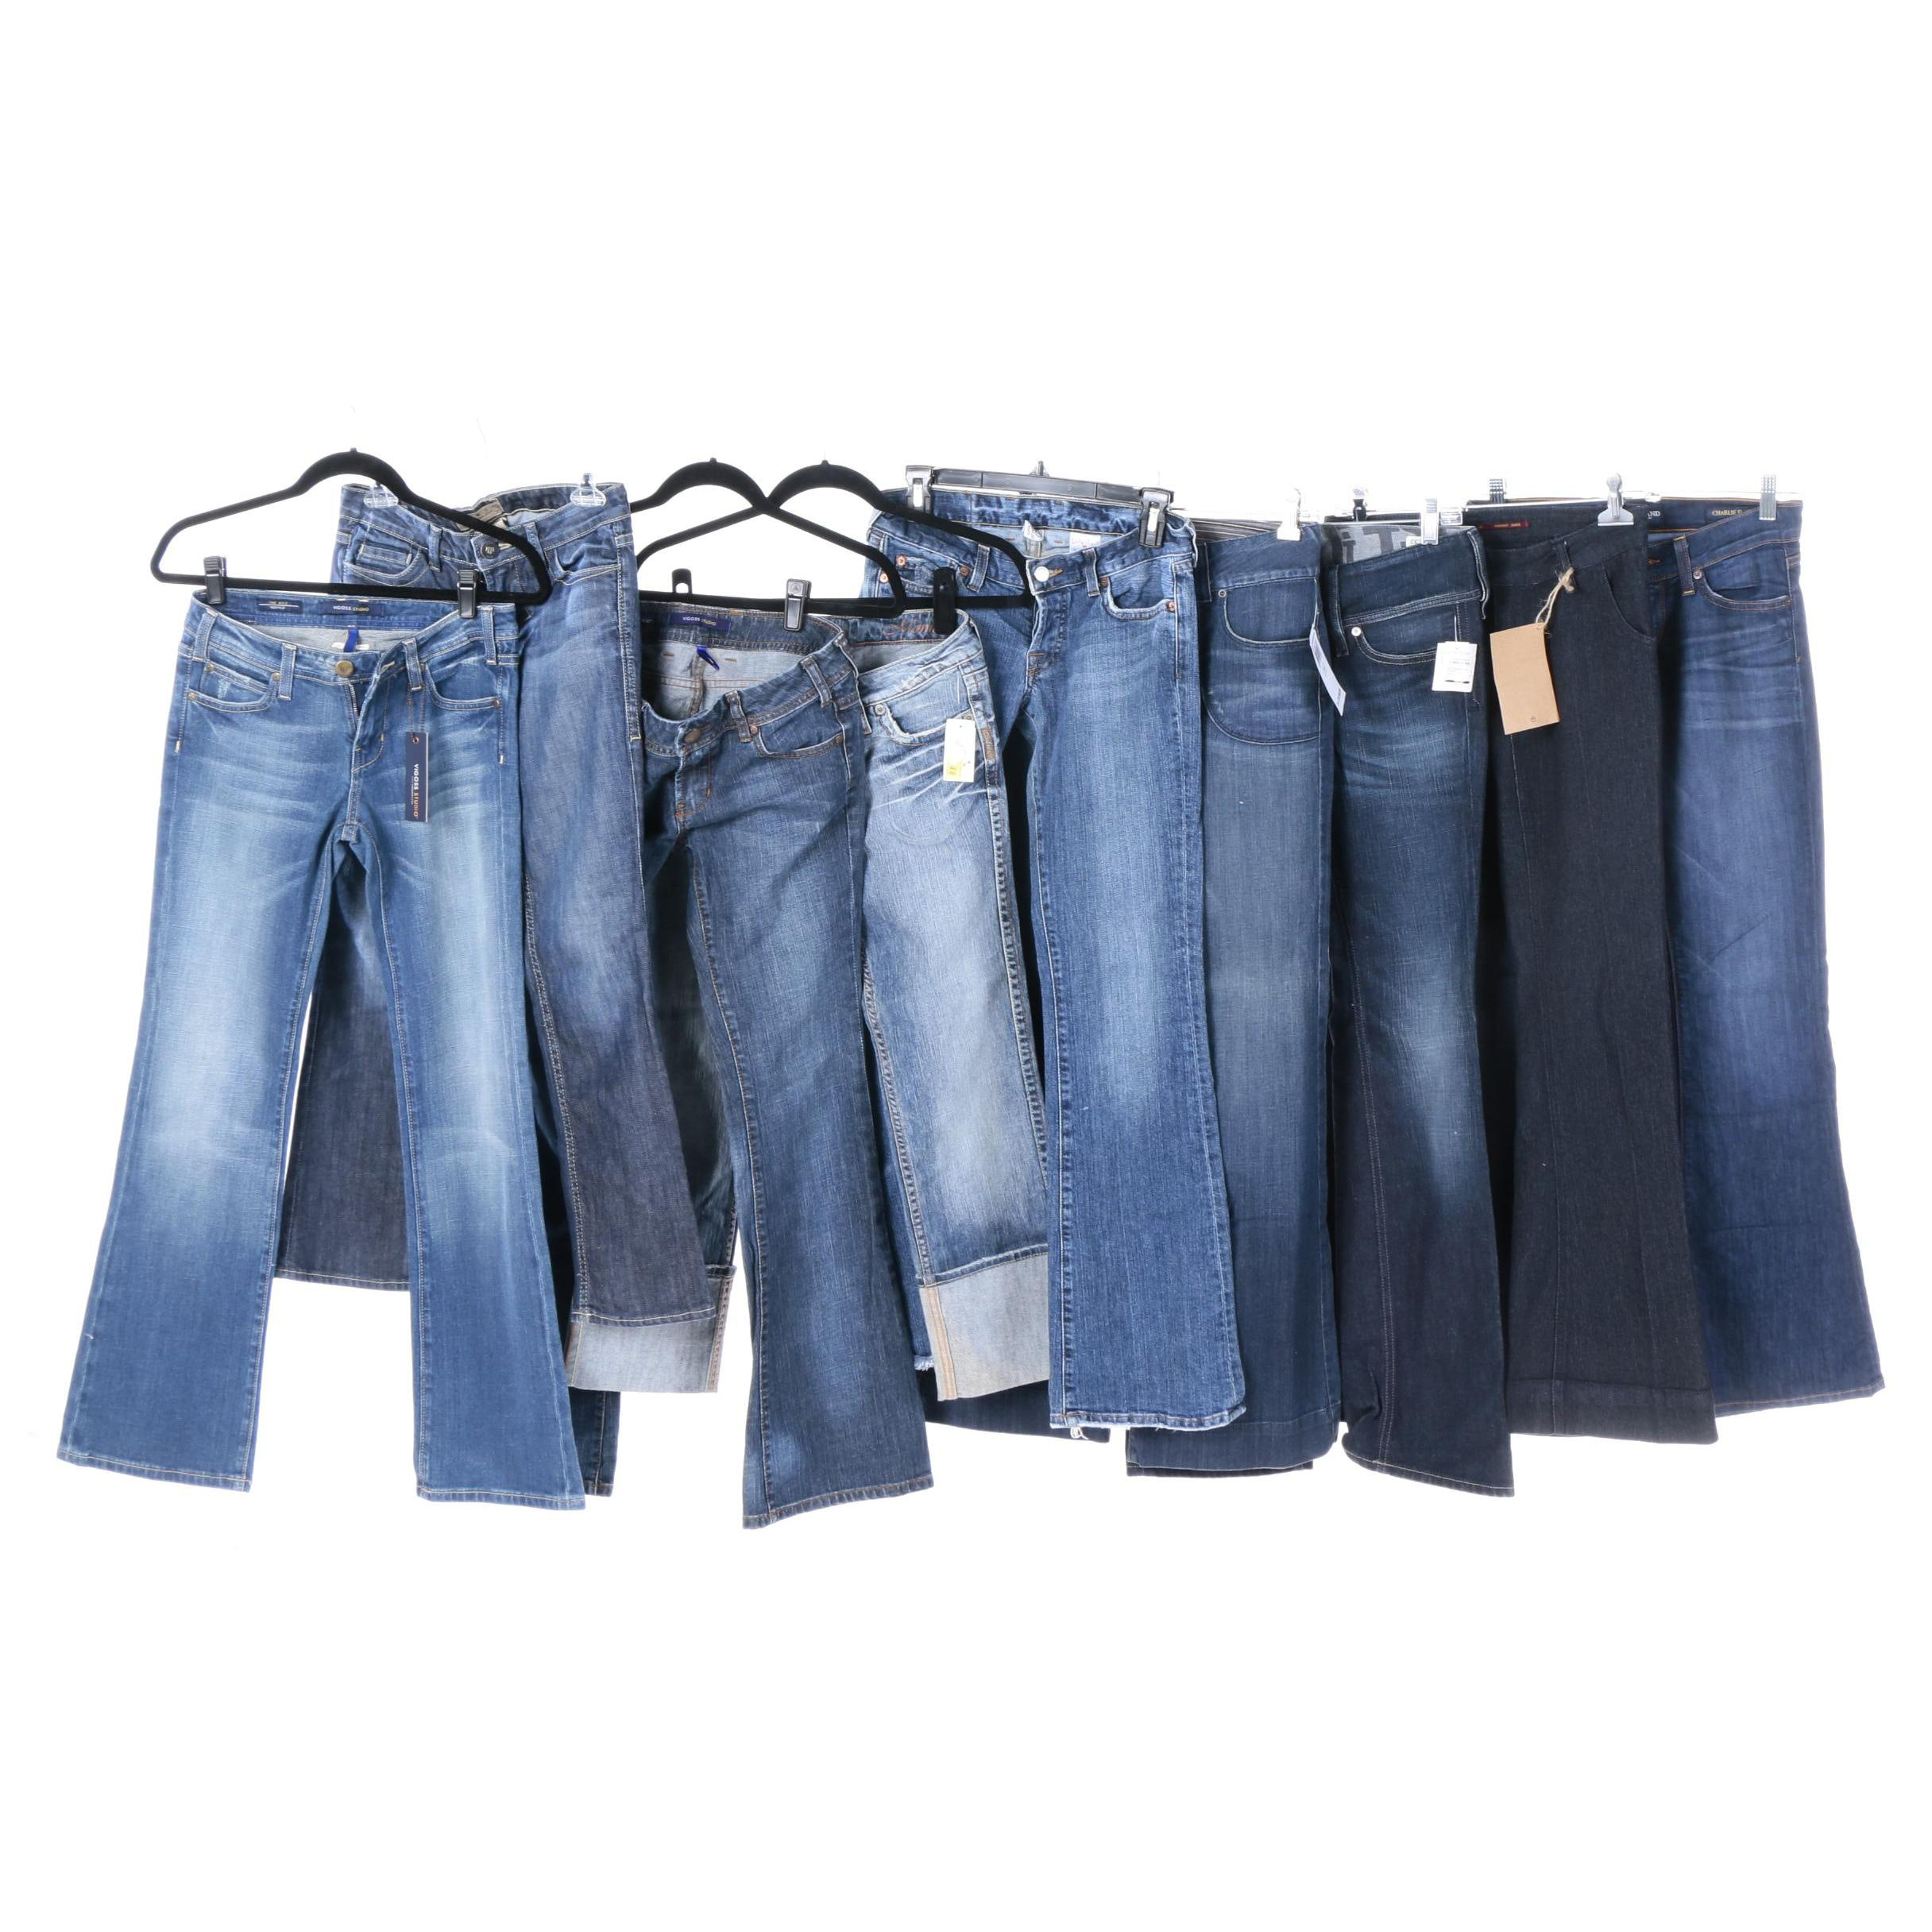 Women's Jeans Including Lucky Brand and Vigoss Studio